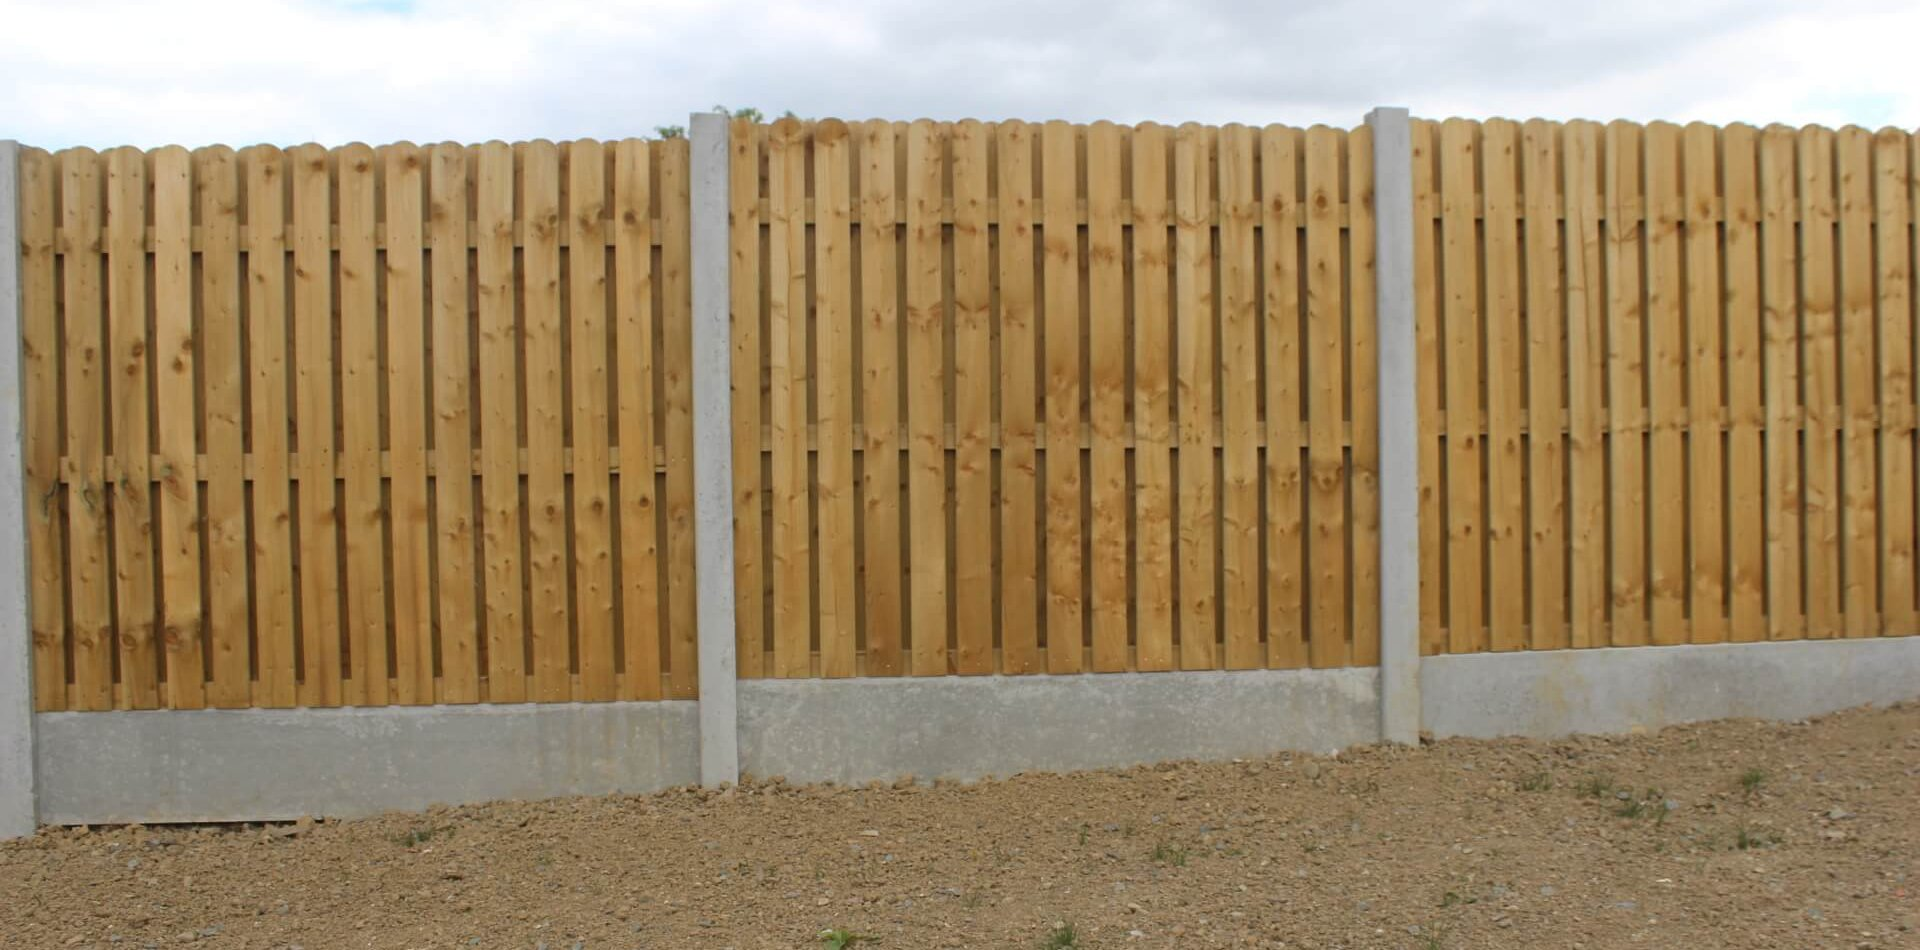 Concrete Post and Hit and Miss Timber Panel Fence, Dunleer Housing Development